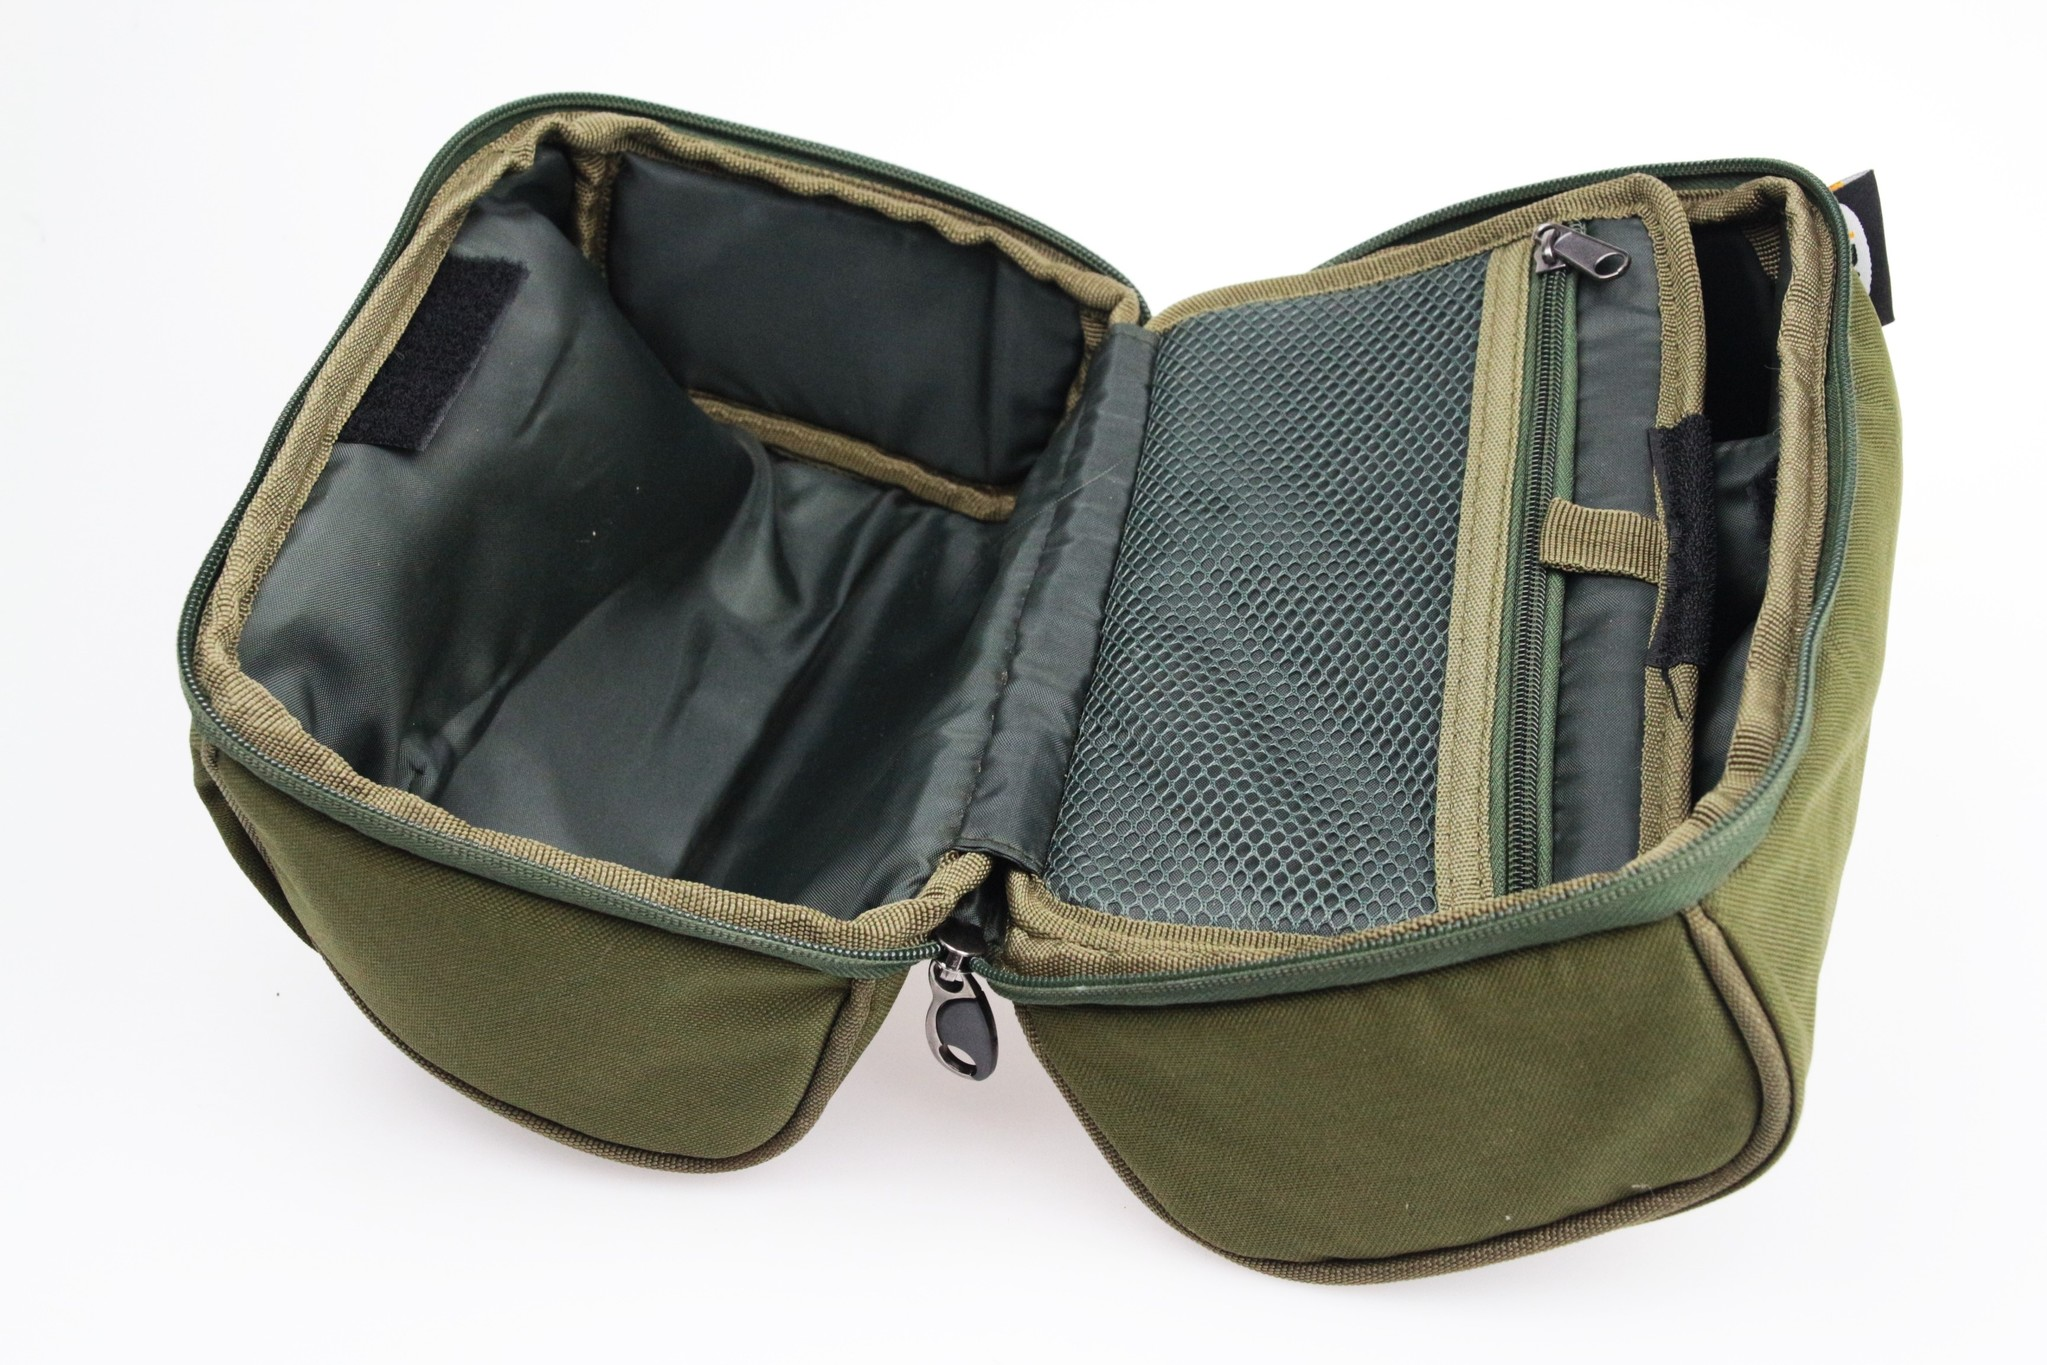 Carp storage bags & wallets